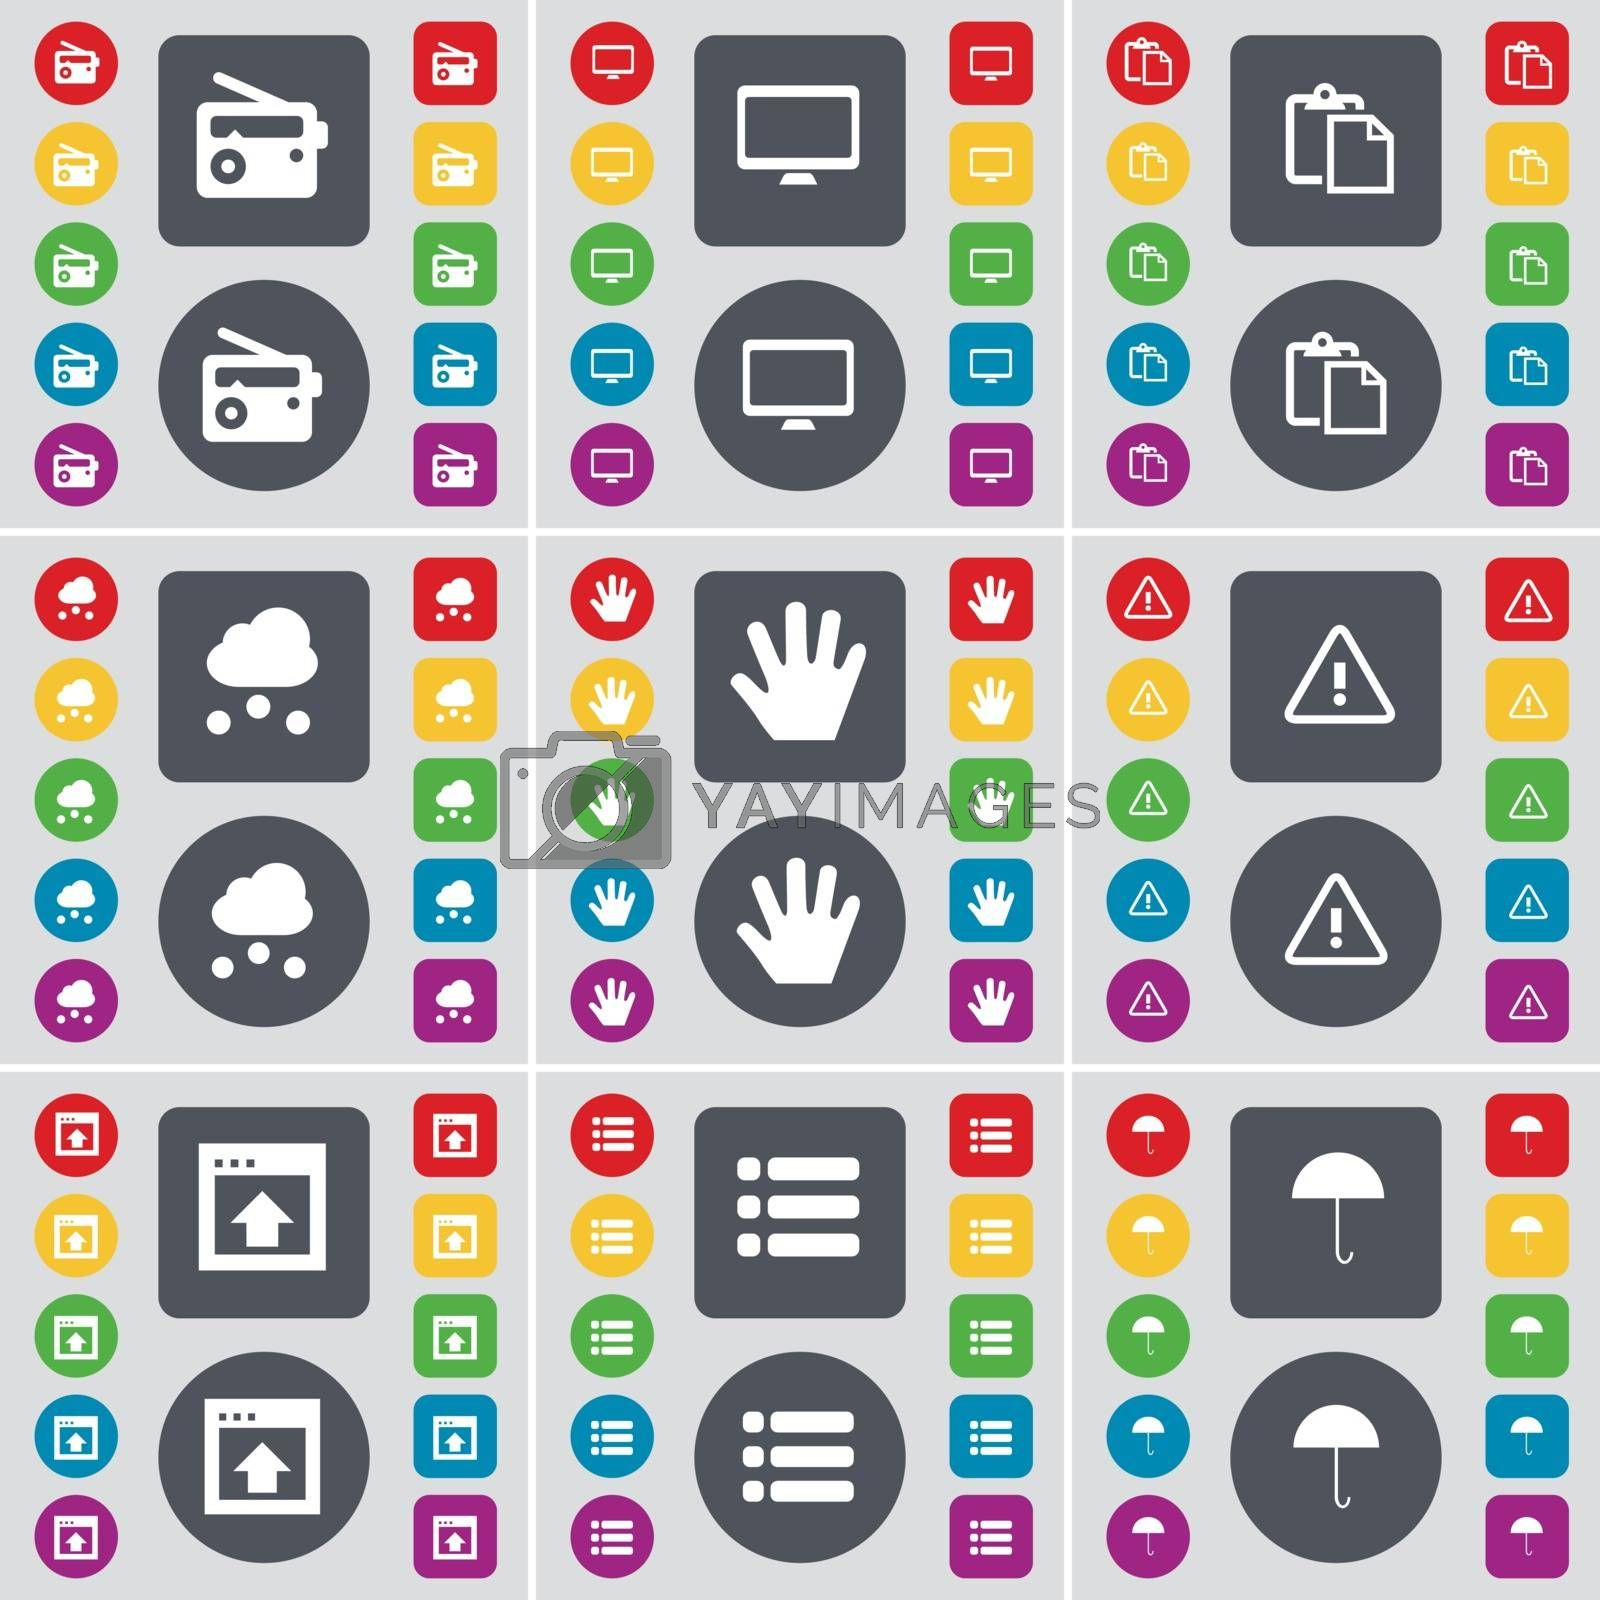 Royalty free image of Radio, Monitor, Survey, Cloud, Hand, Warning, Window, List, Umbrella icon symbol. A large set of flat, colored buttons for your design. Vector by serhii_lohvyniuk